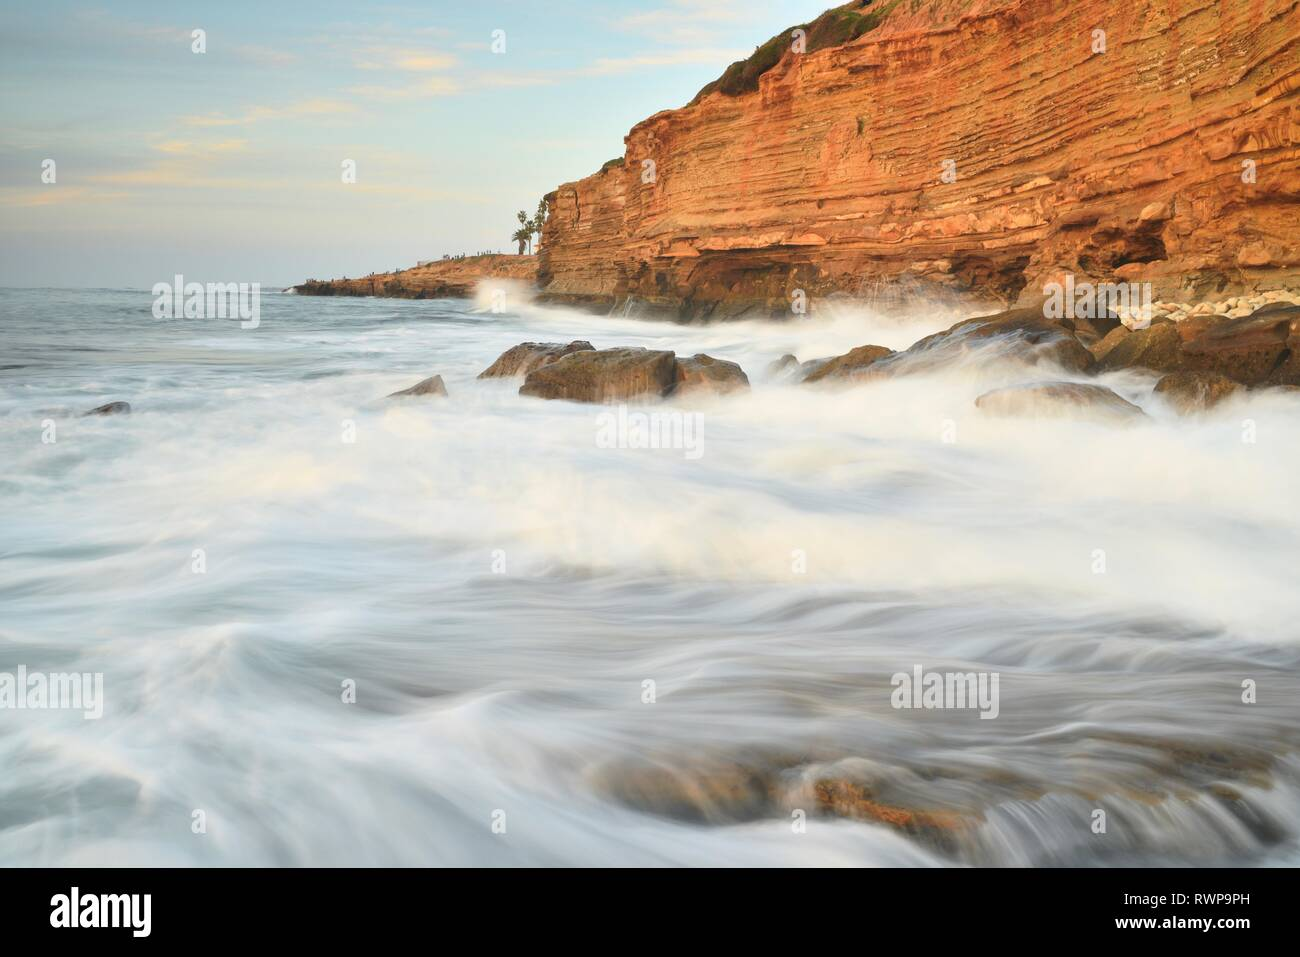 Crashing waves over rocks, with water motion of surf, gold glow on rugged cliffs at Sunset Cliffs Natural Park, Point Loma, San Diego, California, USA Stock Photo